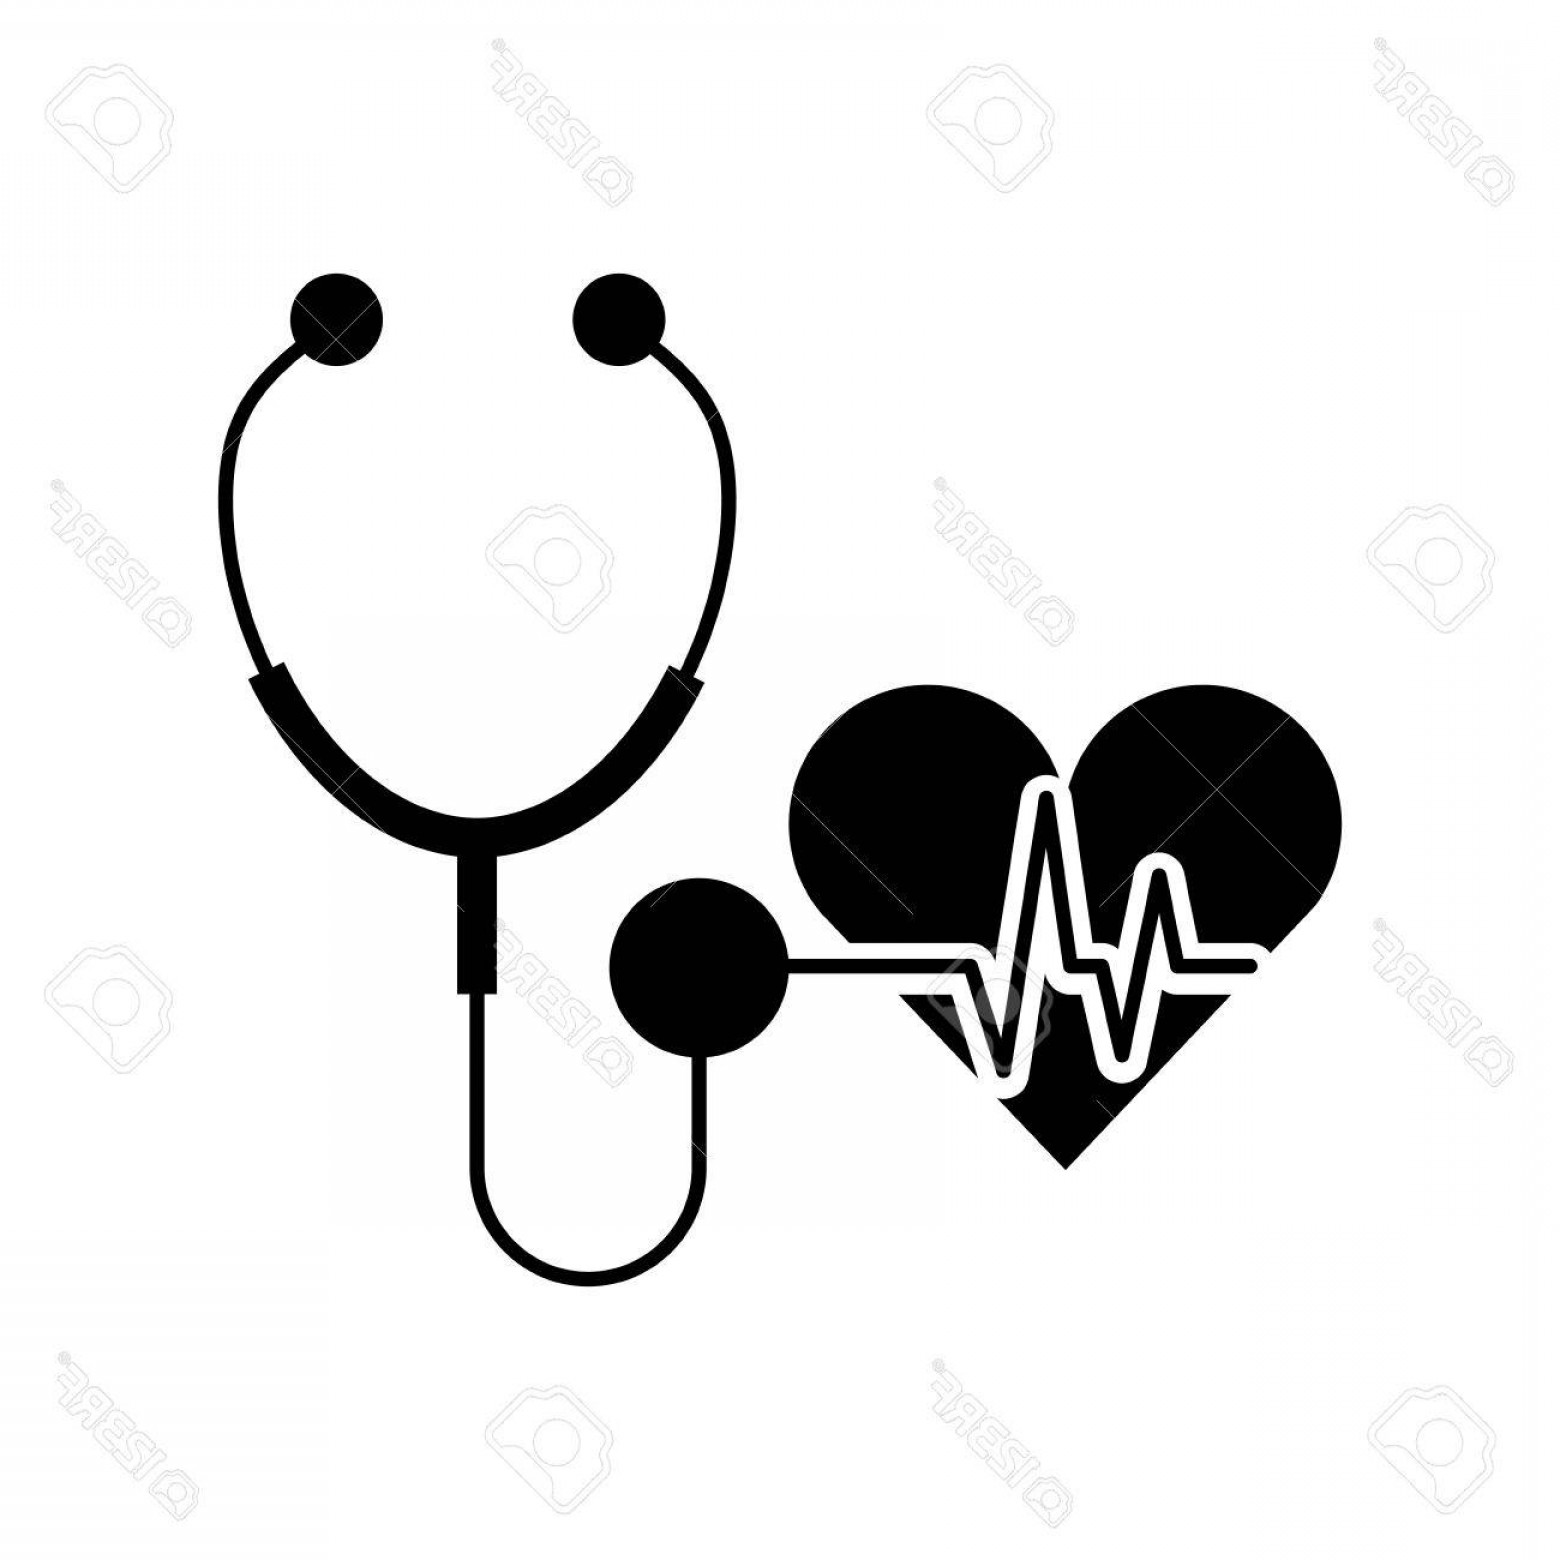 Stethoscope With Heart Vector Art: Photostock Vector Stethoscope Medical With Heart Vector Illustration Design